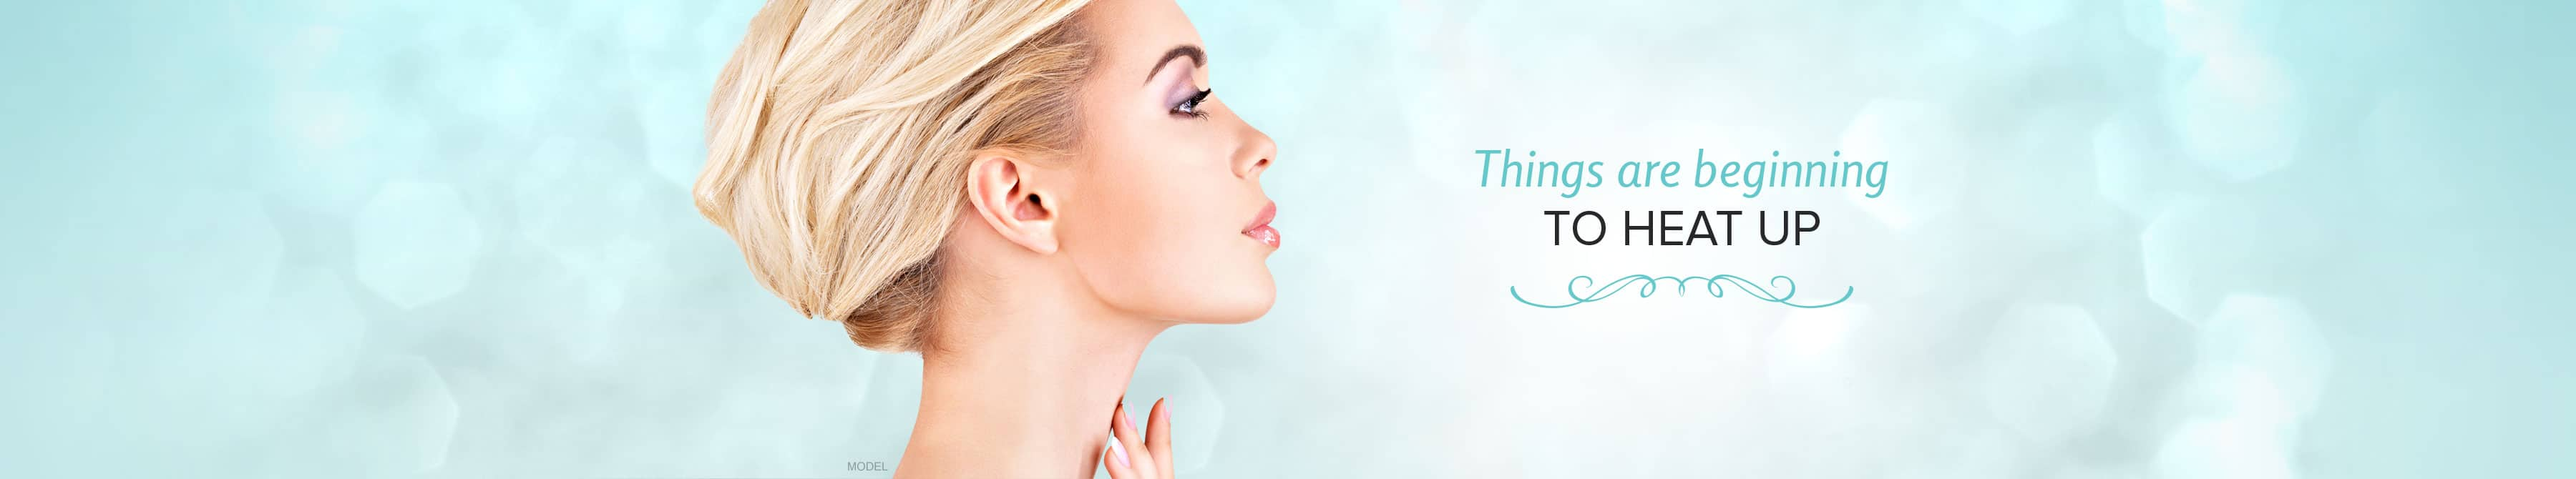 PrecisionTX Skin Tightening in Atlanta | Buckhead Plastic Surgery